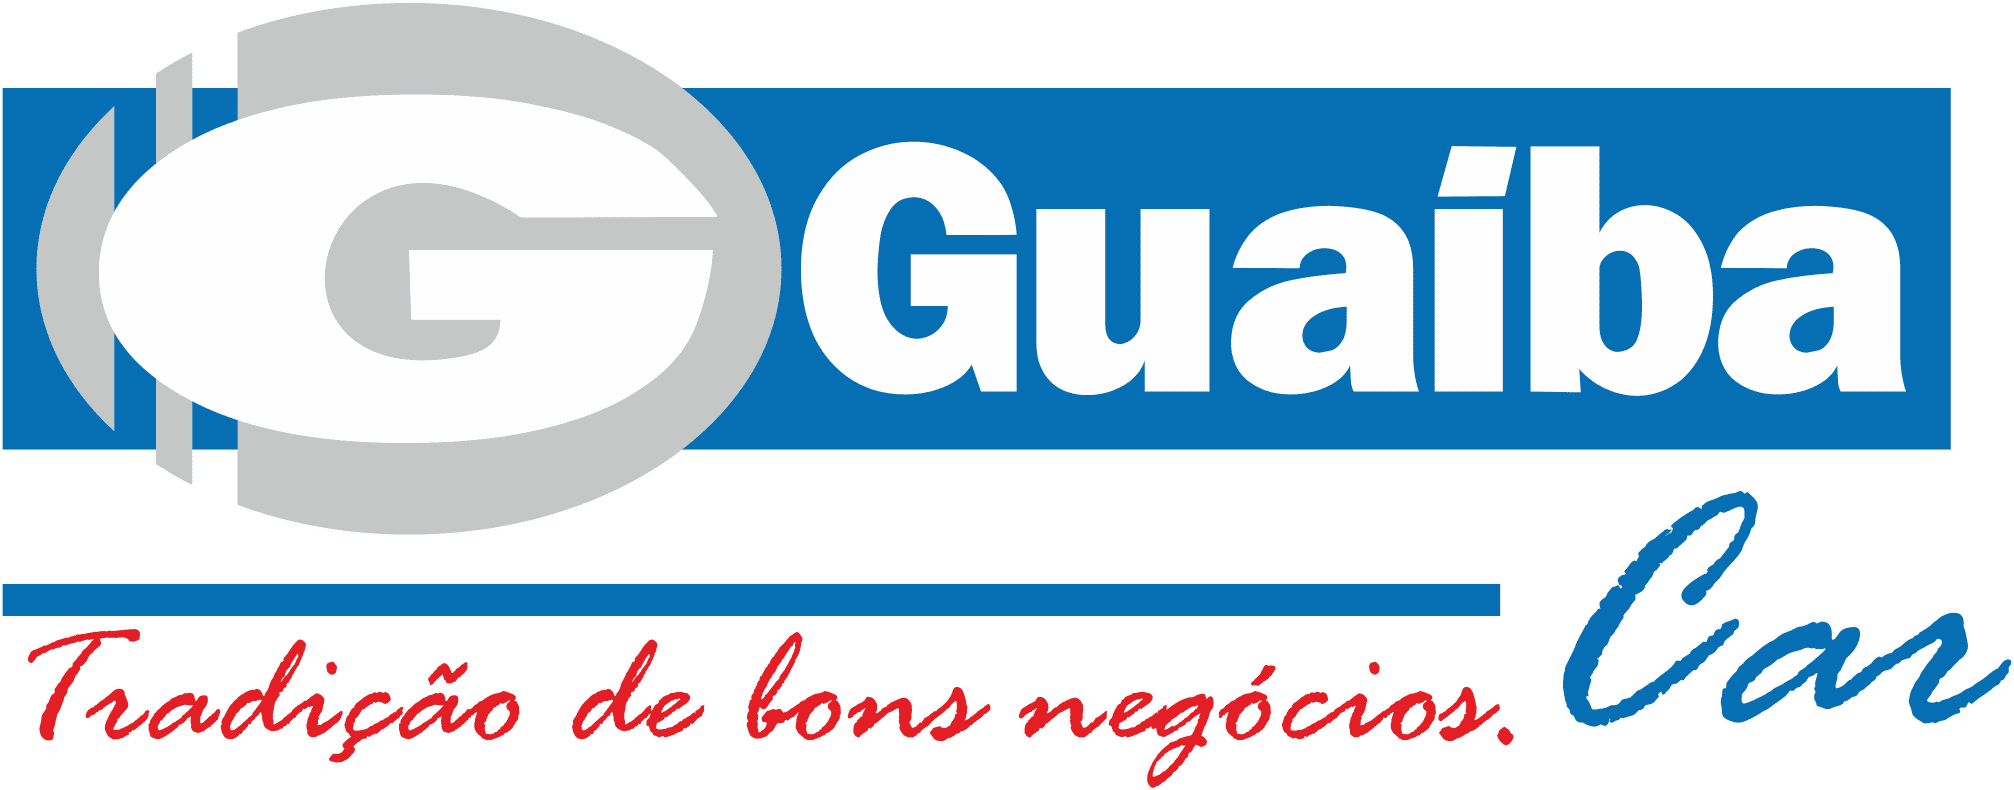 Guaiba Car logo